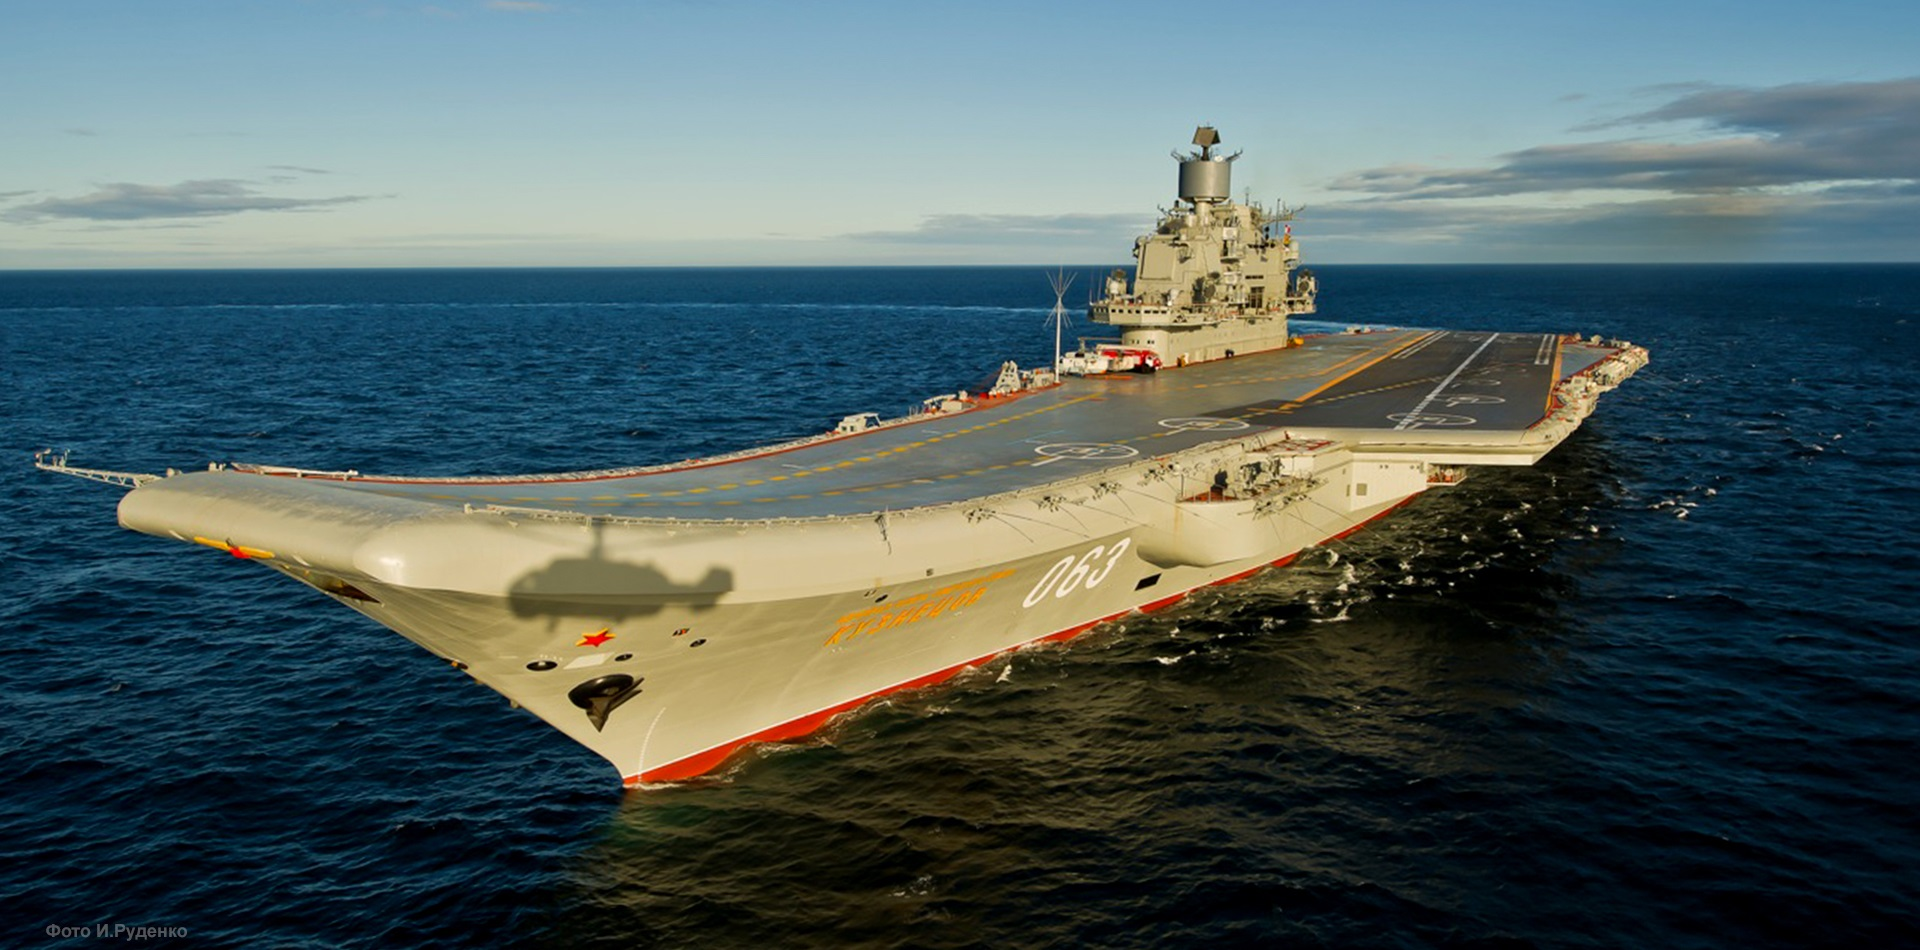 A Few Years Ago, the U.S. Navy Feared Russia's Aircraft Carrier Might Sink